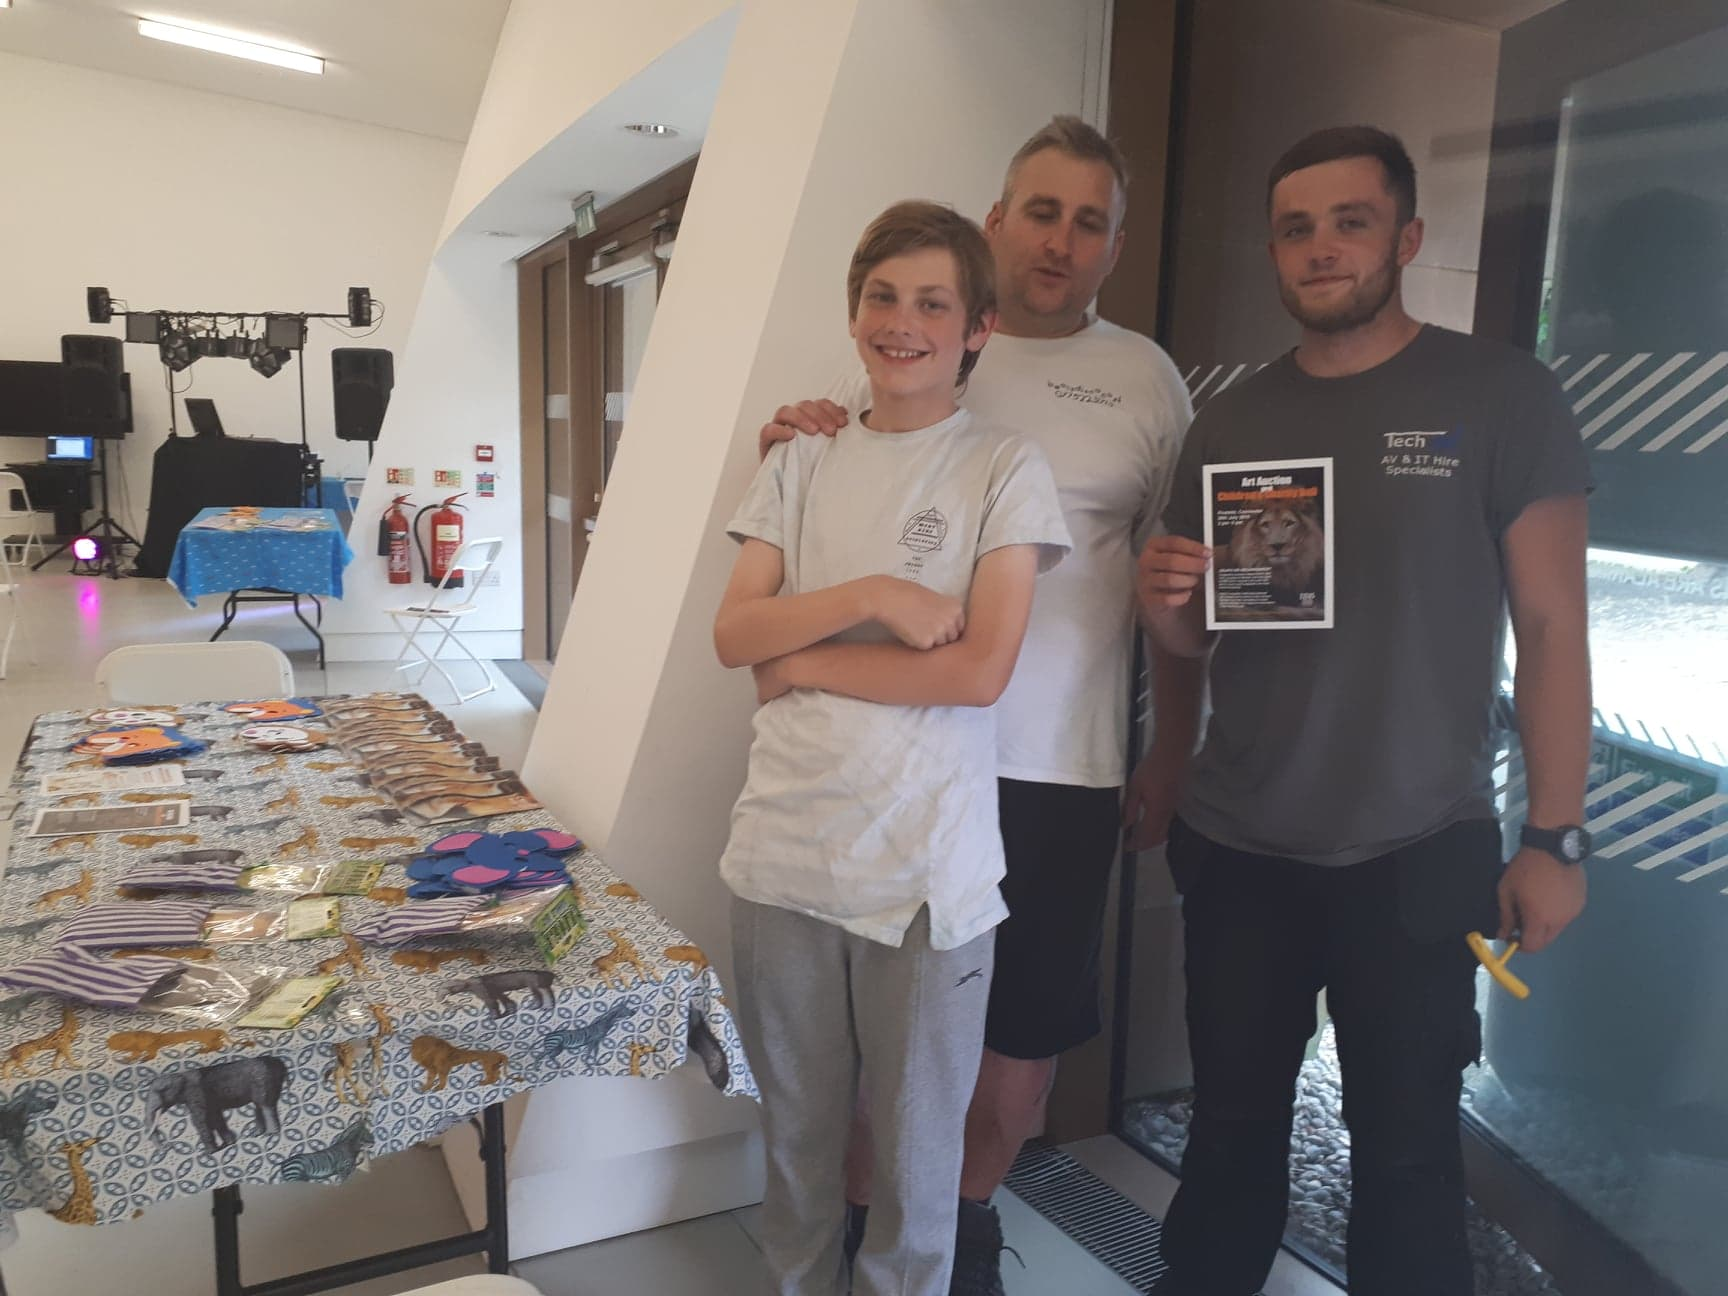 OWAP AR fundraiser 20 JULY 2018 firstsite gallery colchester ukWITH SIMON DJ  HIS SON VIGGO AND LEE TECHIE SET UP AUCTION DISCO SECTION OF THE FIRSTSITE GALLERY ROOMS.jpg